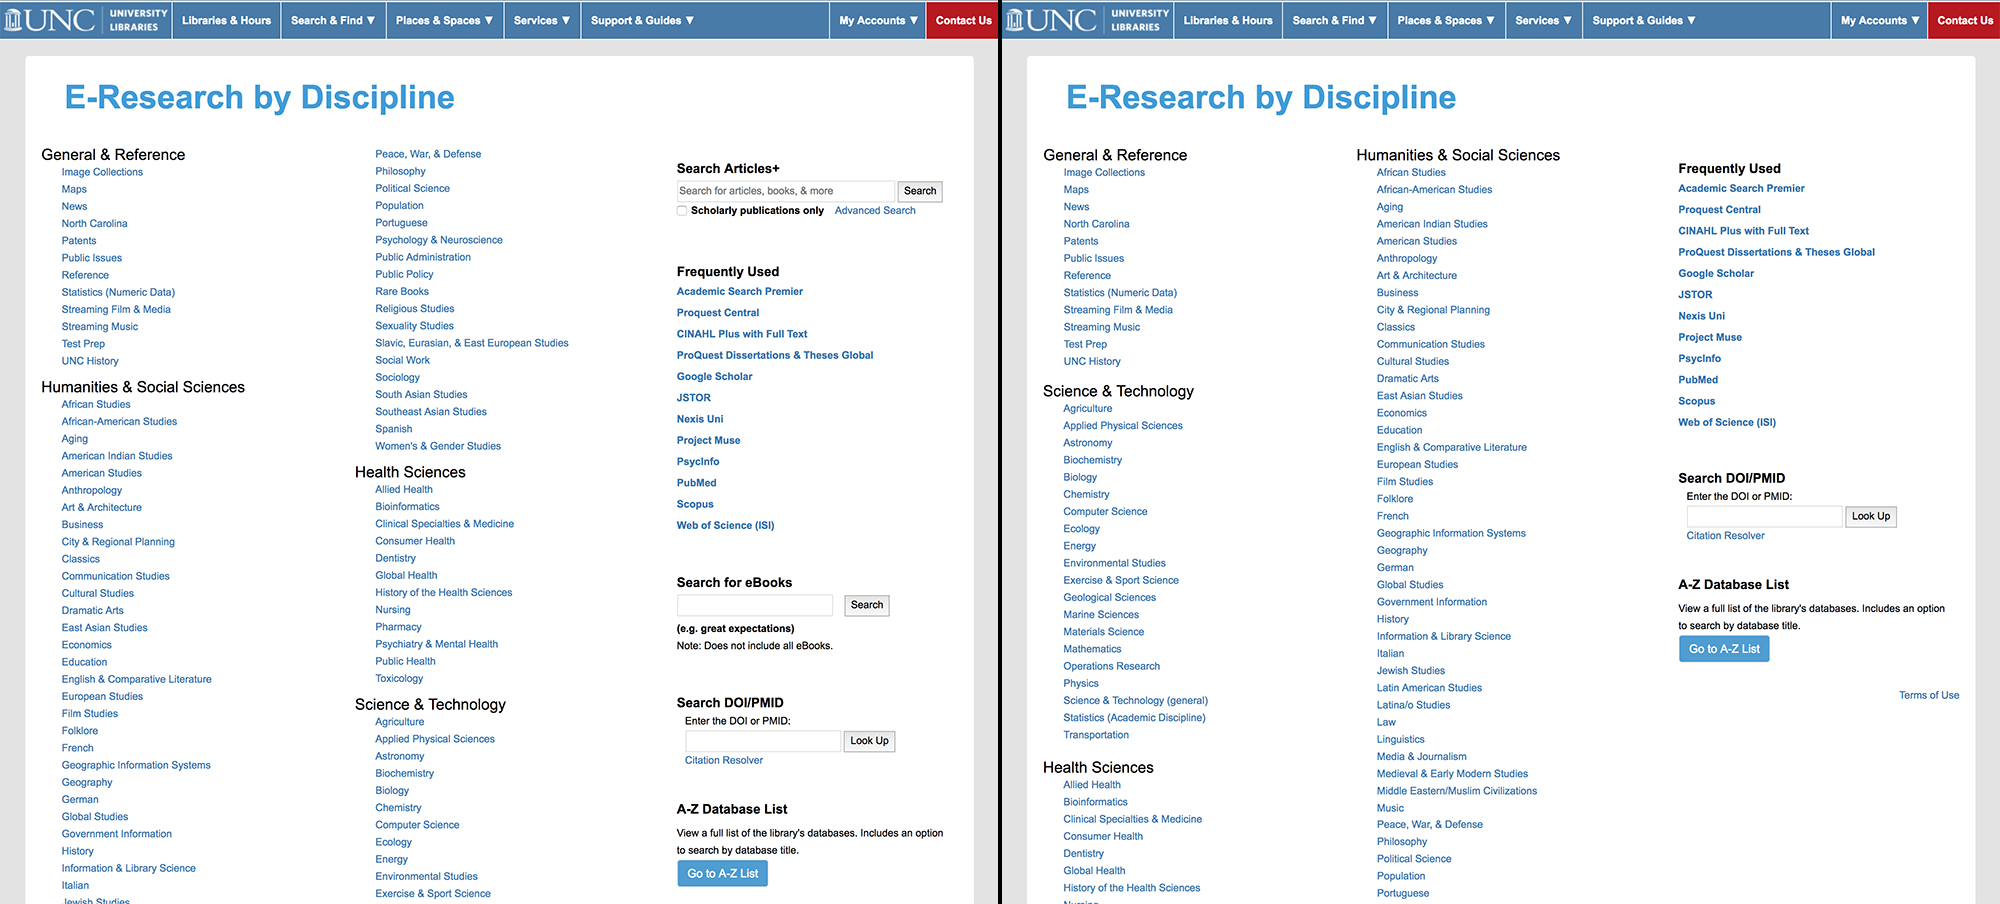 Side by side comparison of the E-Research by Discipline page before and after changes made in January 2019